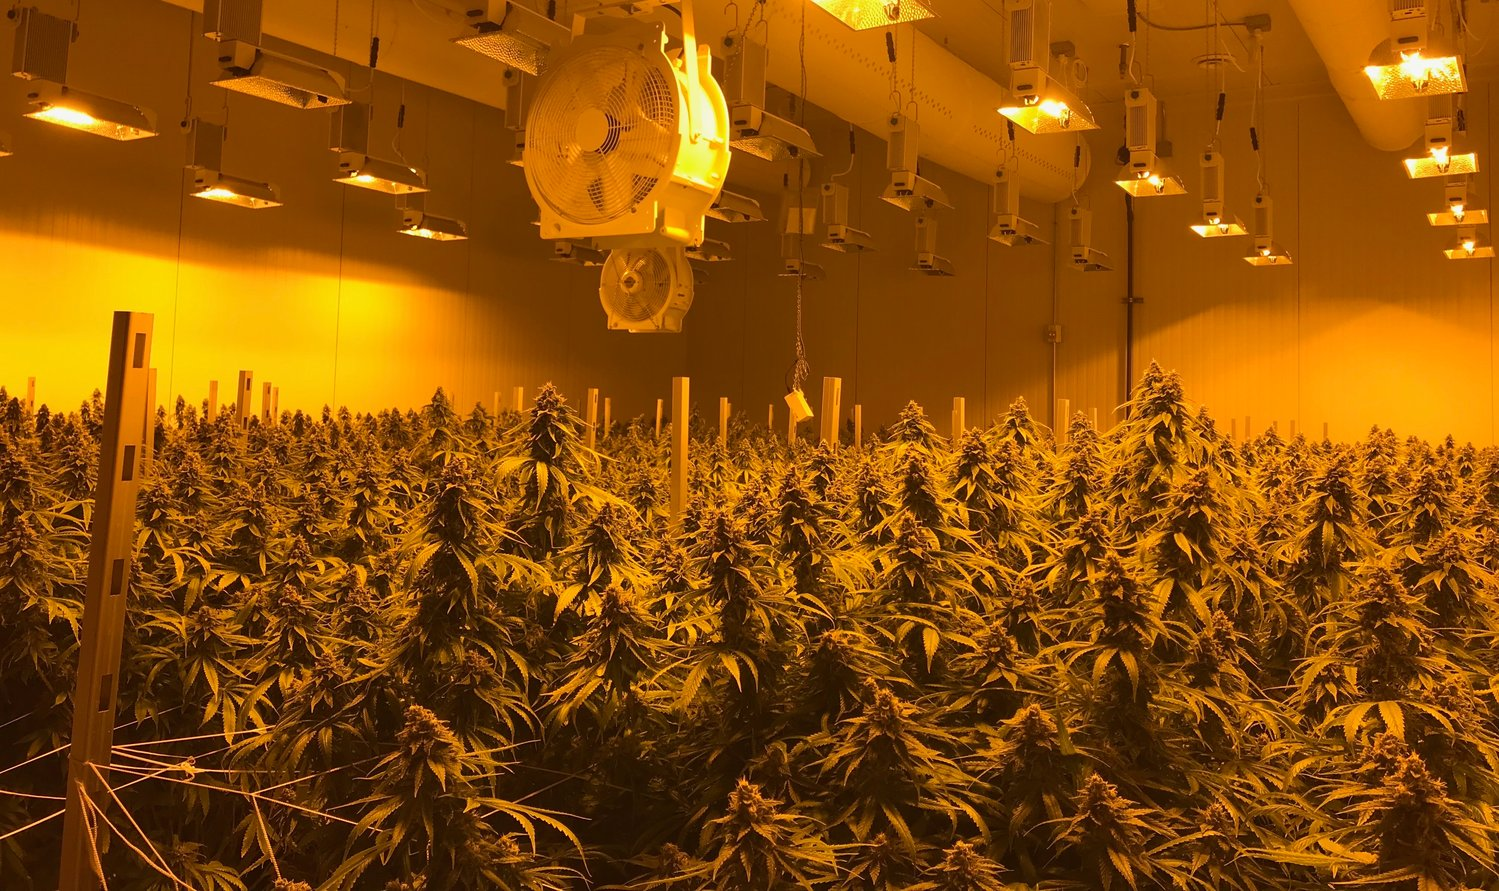 Licensed pot growers lock crosshairs on caregivers | City Pulse